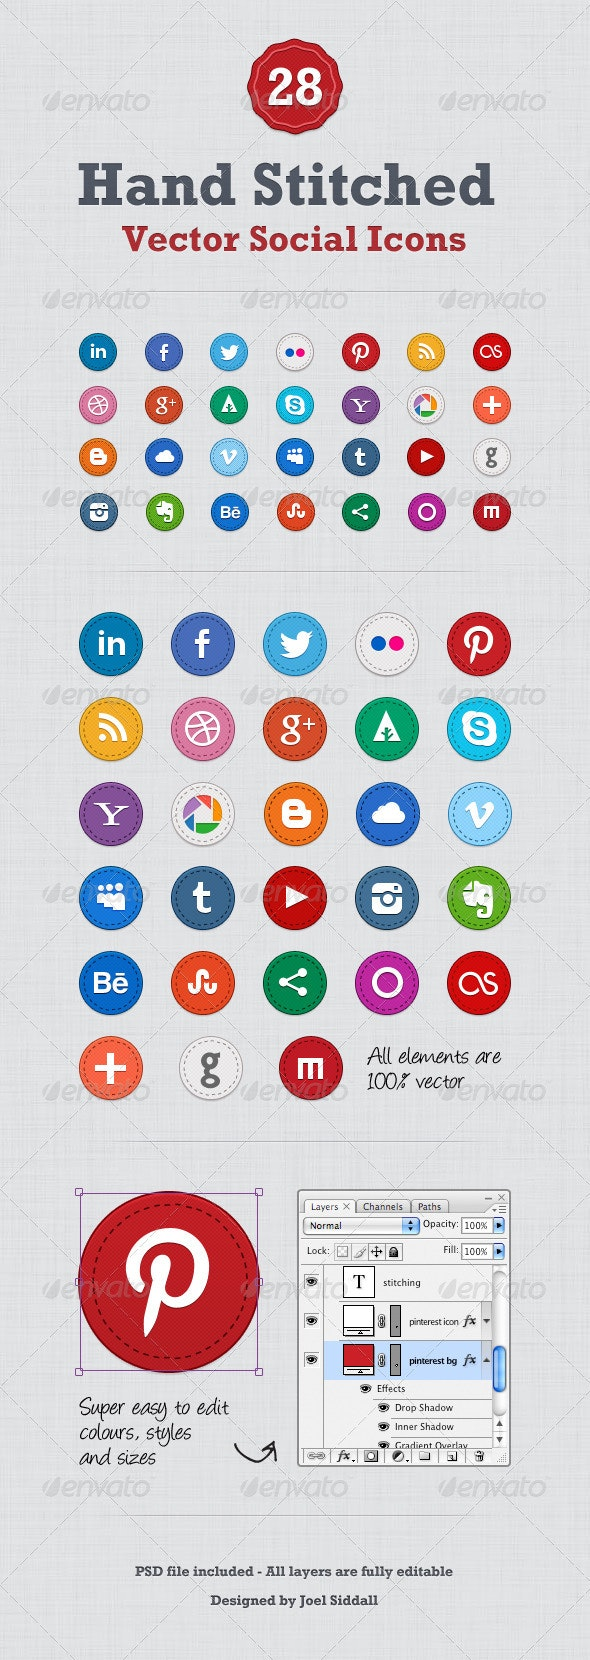 Hand Stitched Social Media Icons - Media Icons